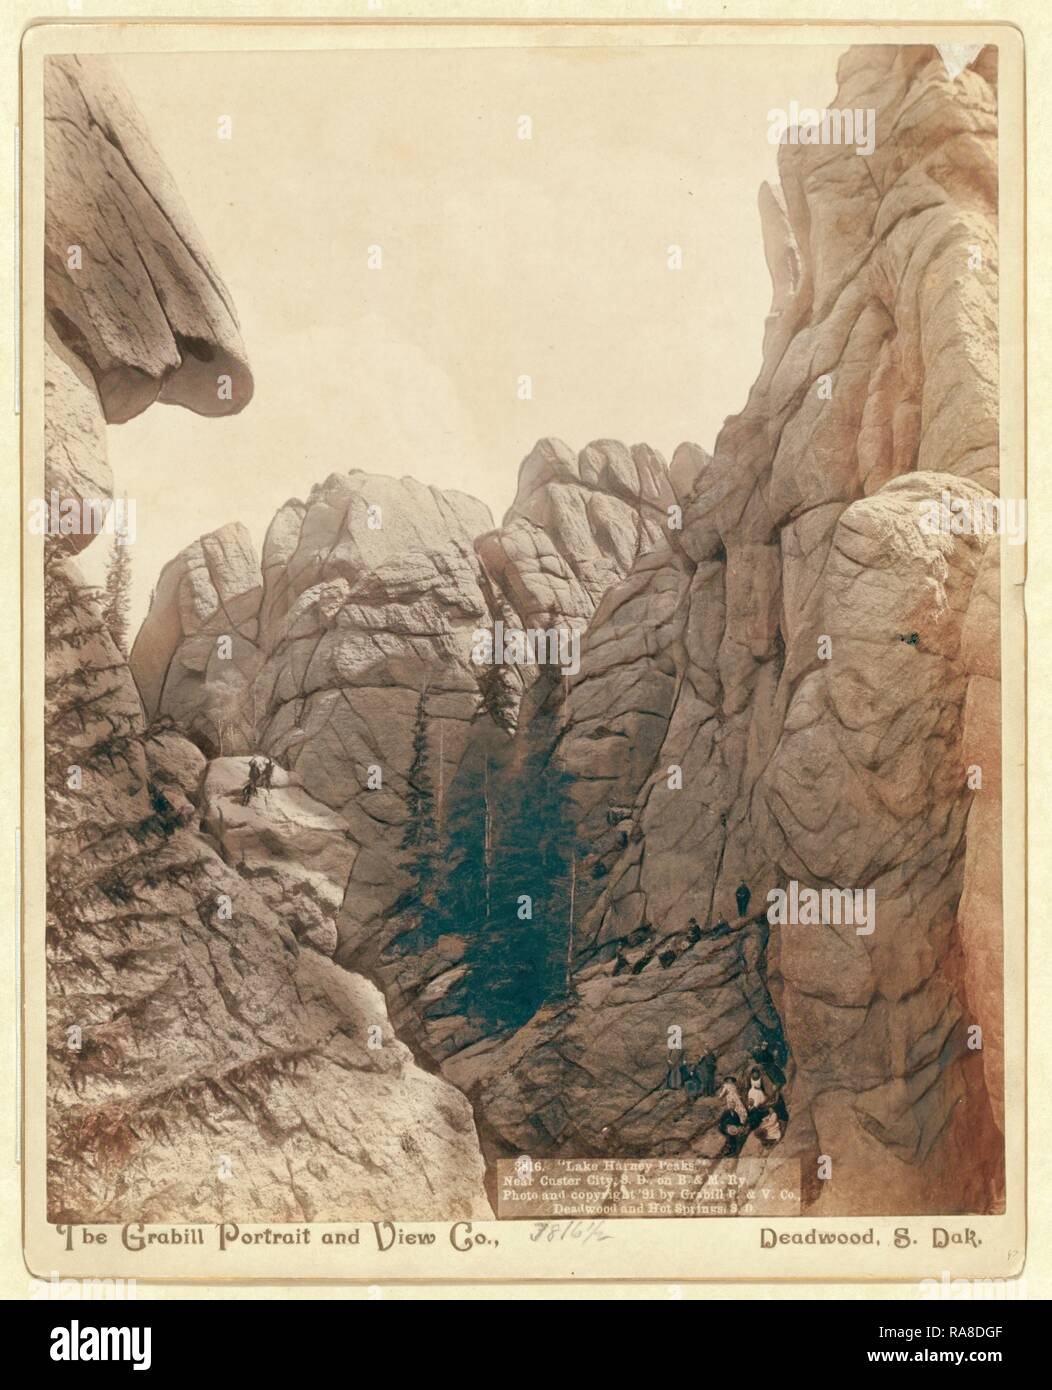 Lake Harney Peaks, Near Custer City, S.D., on B. & M. Ry. Reimagined by Gibon. Classic art with a modern twist reimagined - Stock Image